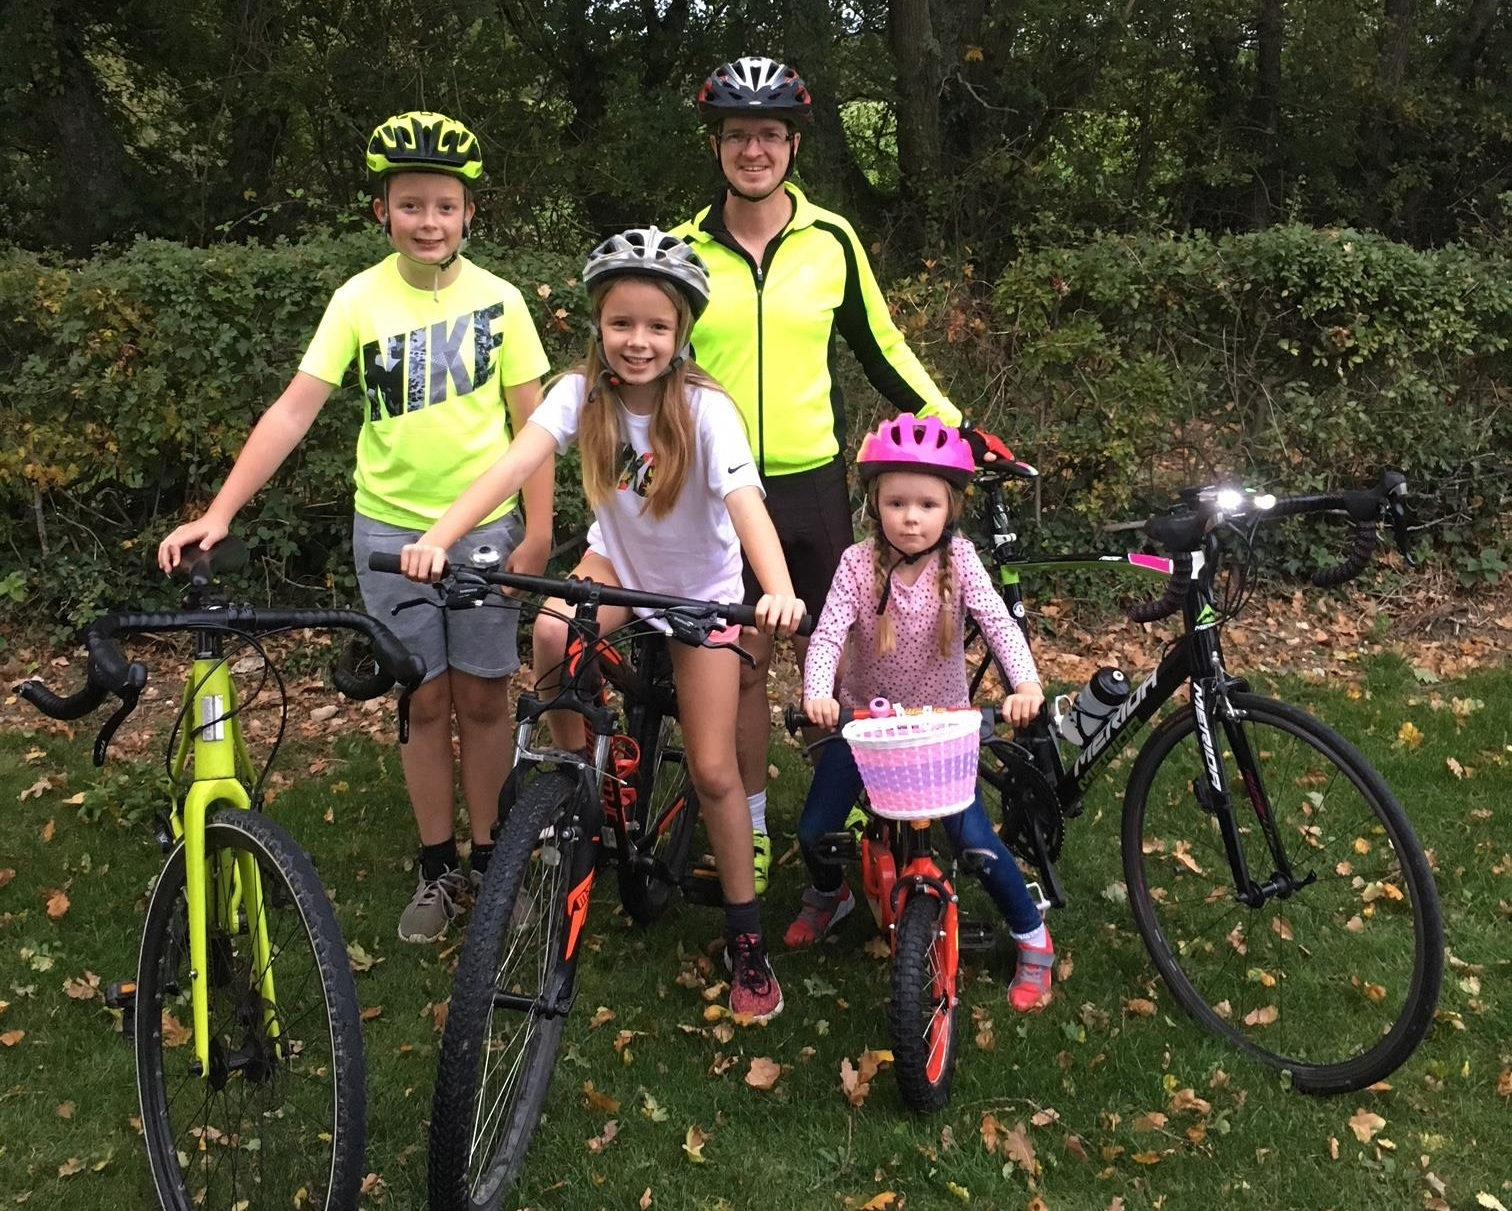 Isle of Wight super-cyclist Alan Green with his children Callum, Jessica, and Millie.